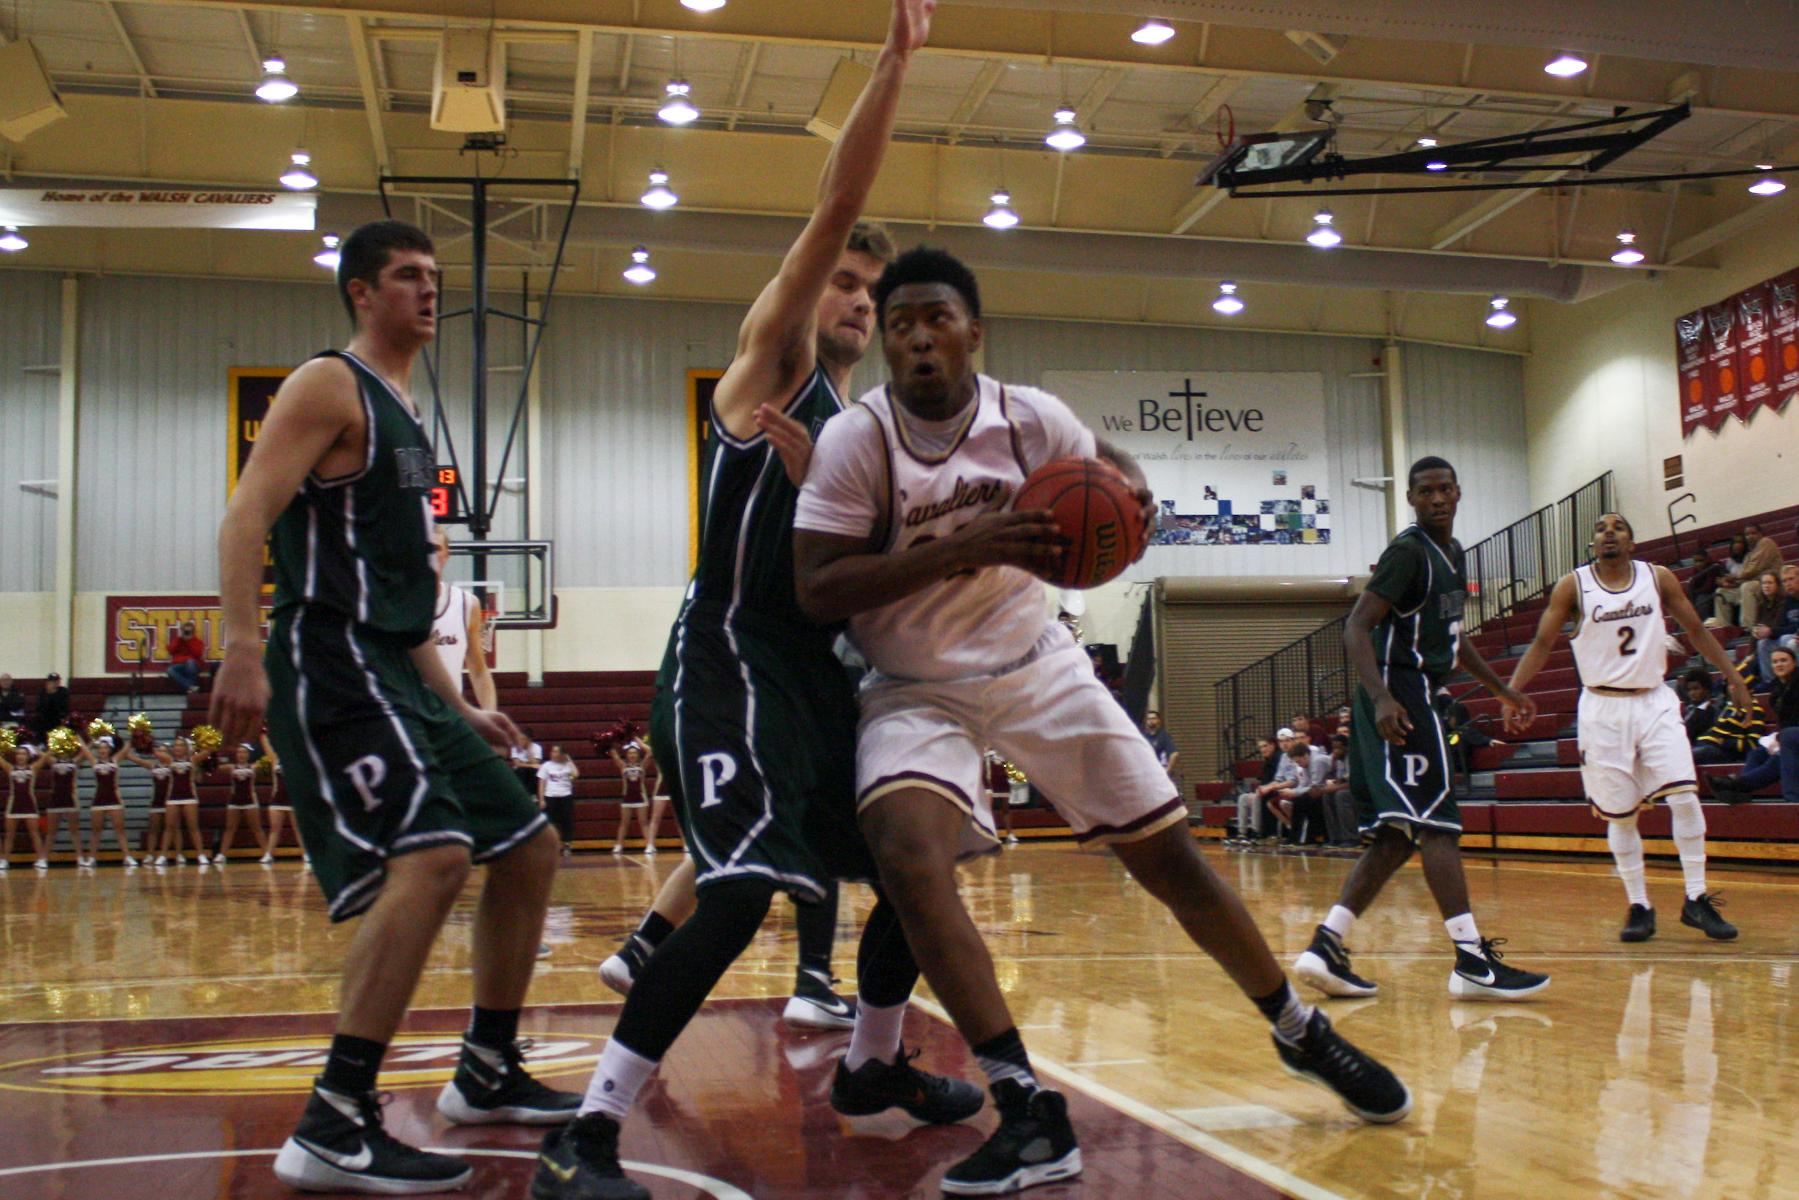 Cavs Cruise By Ohio Valley In Season Opener